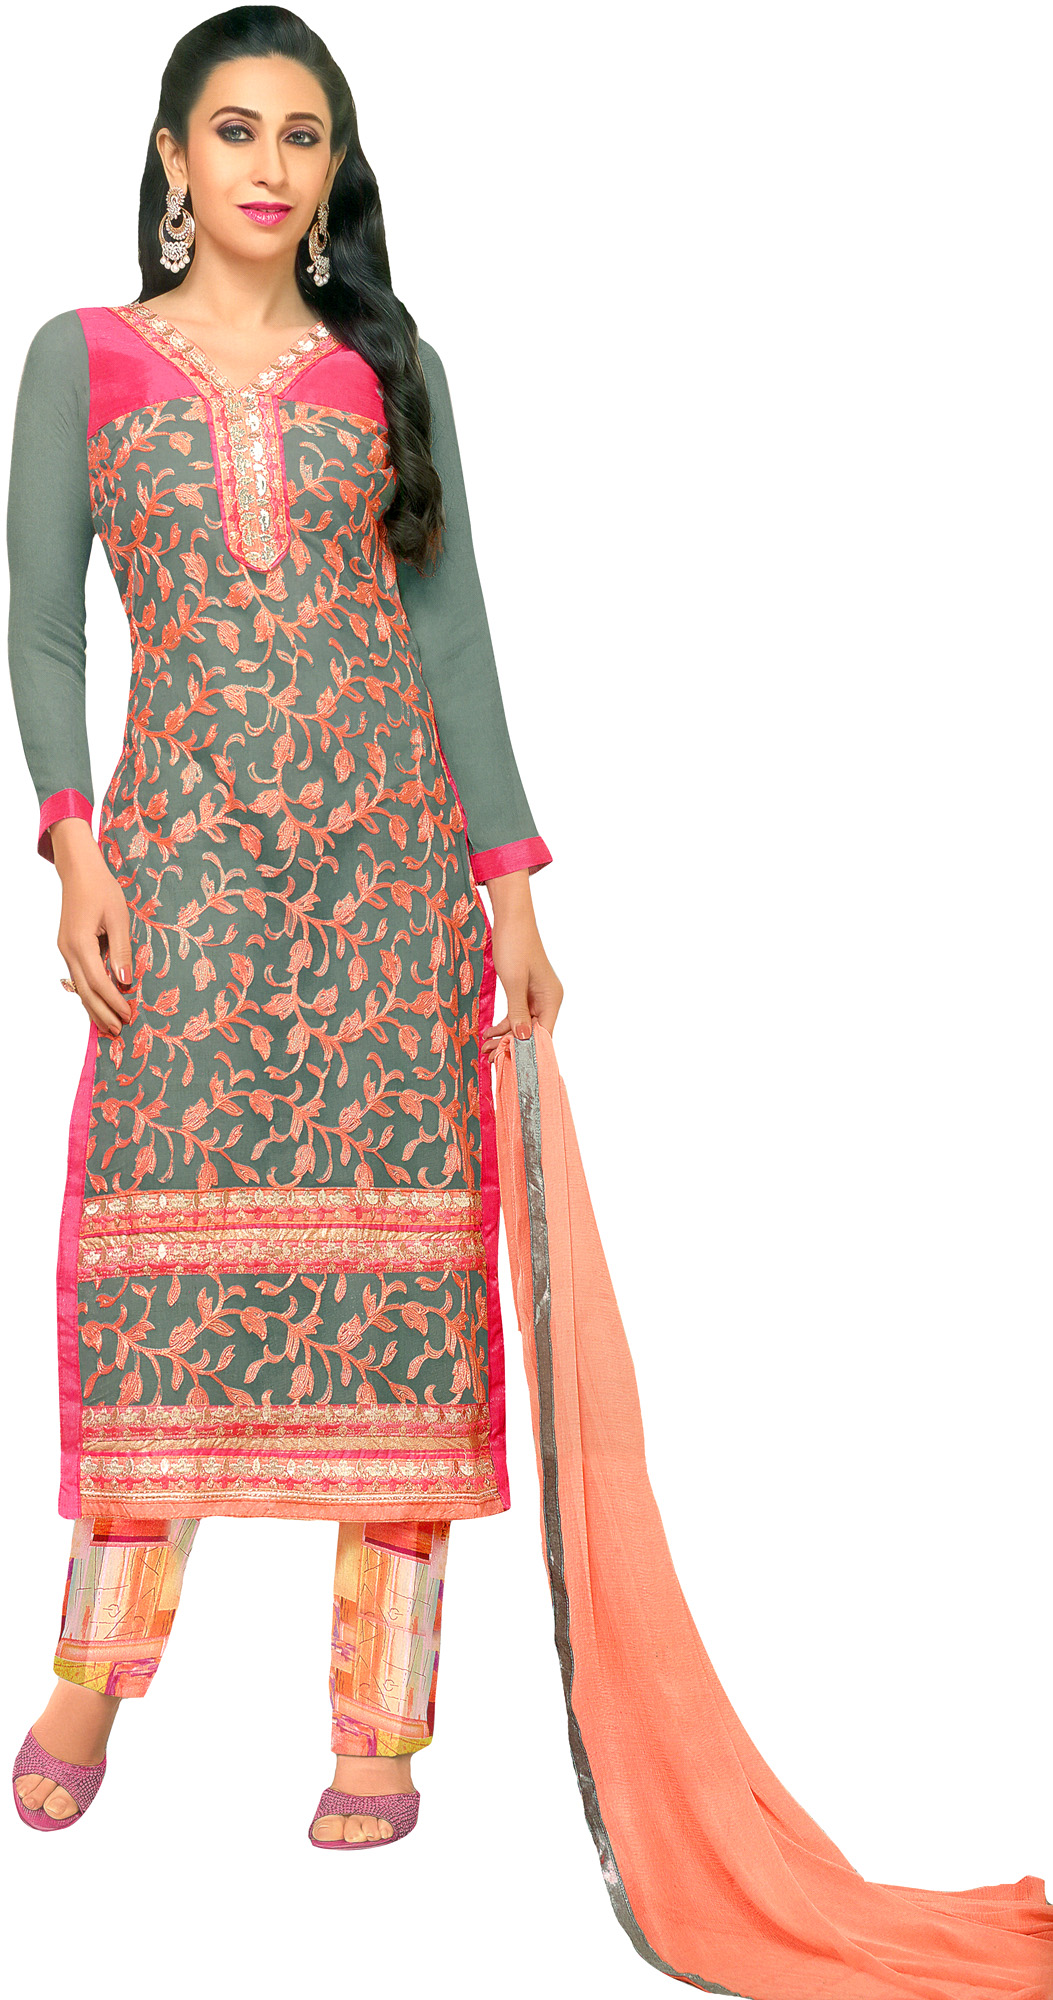 Gray and pink parallel salwar suit with ari embroidery